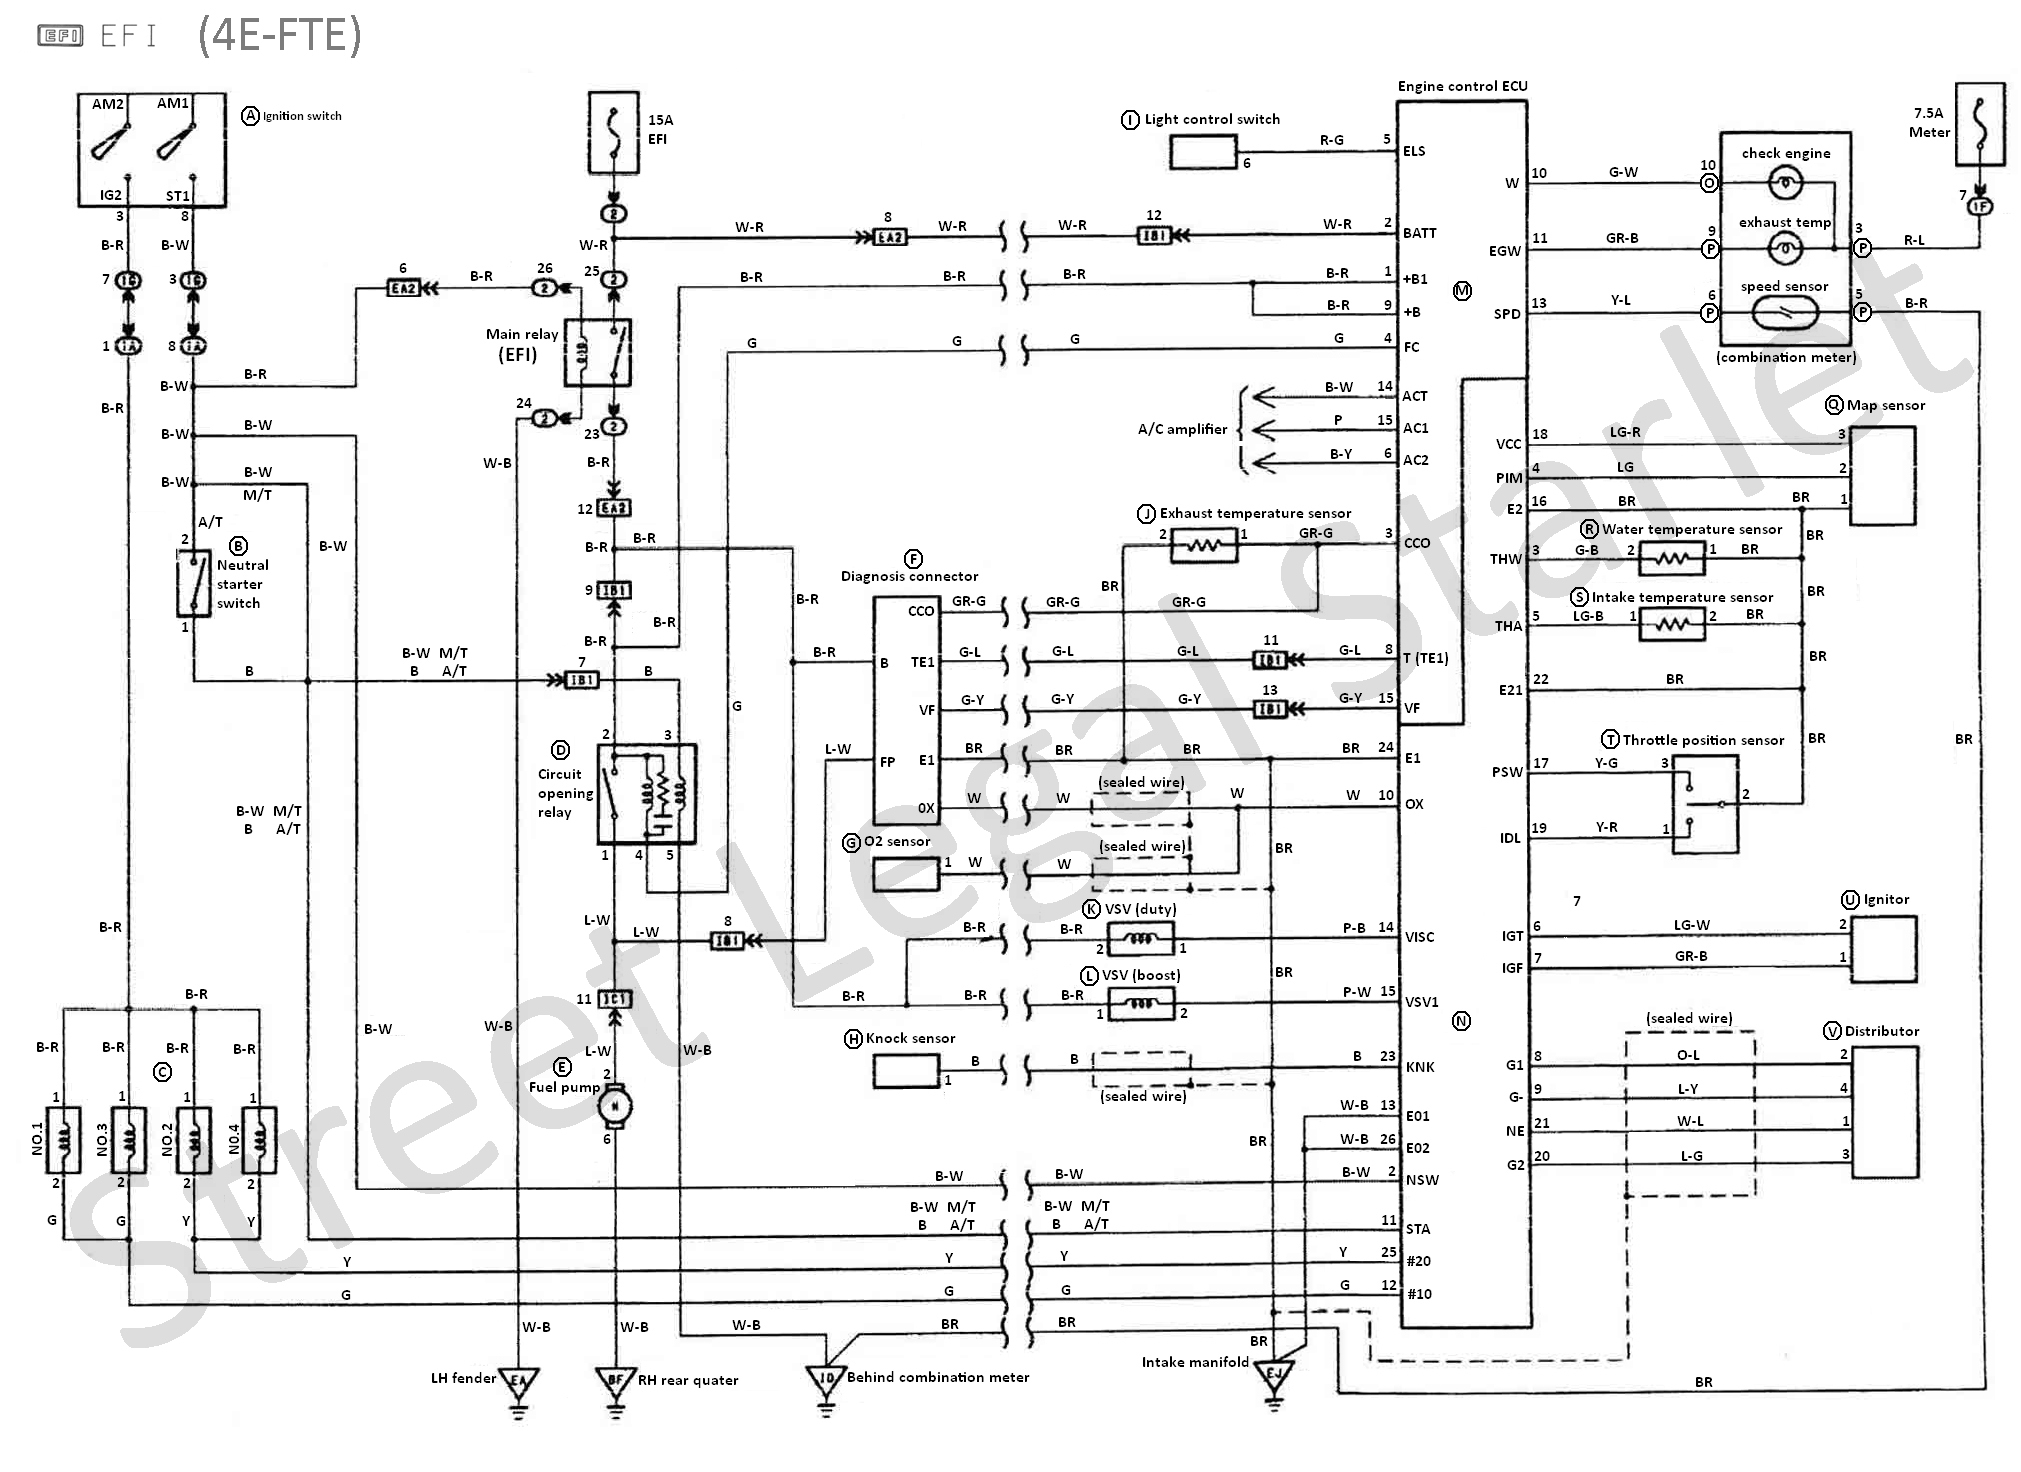 Diagram R32 Ecu Wiring Diagram Full Version Hd Quality